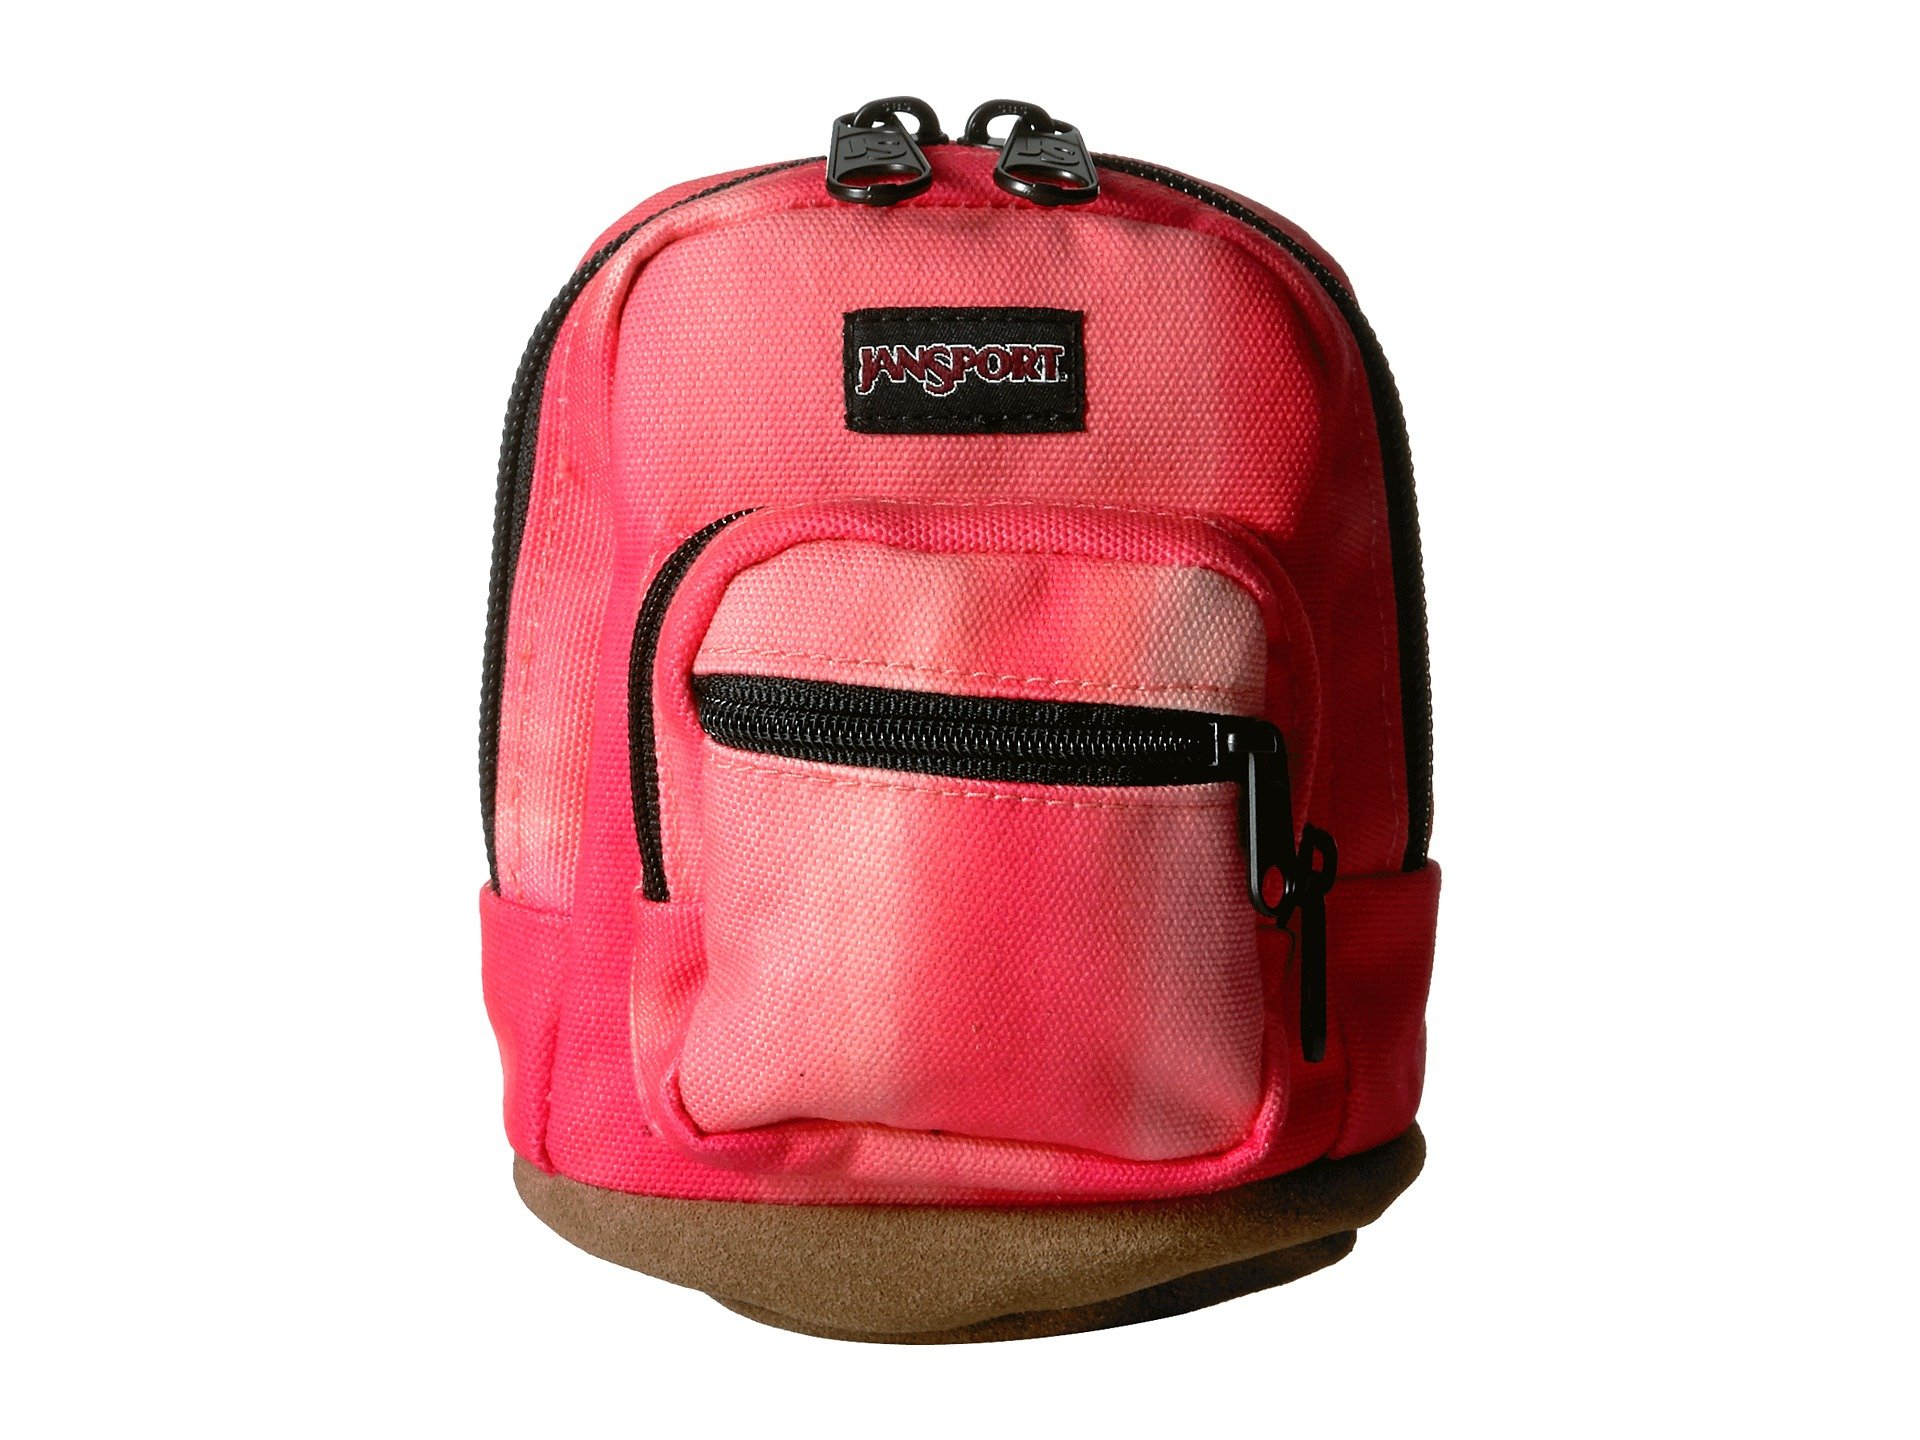 Cartuchera para Hombre JanSport Right Pouch  + JanSport en VeoyCompro.net